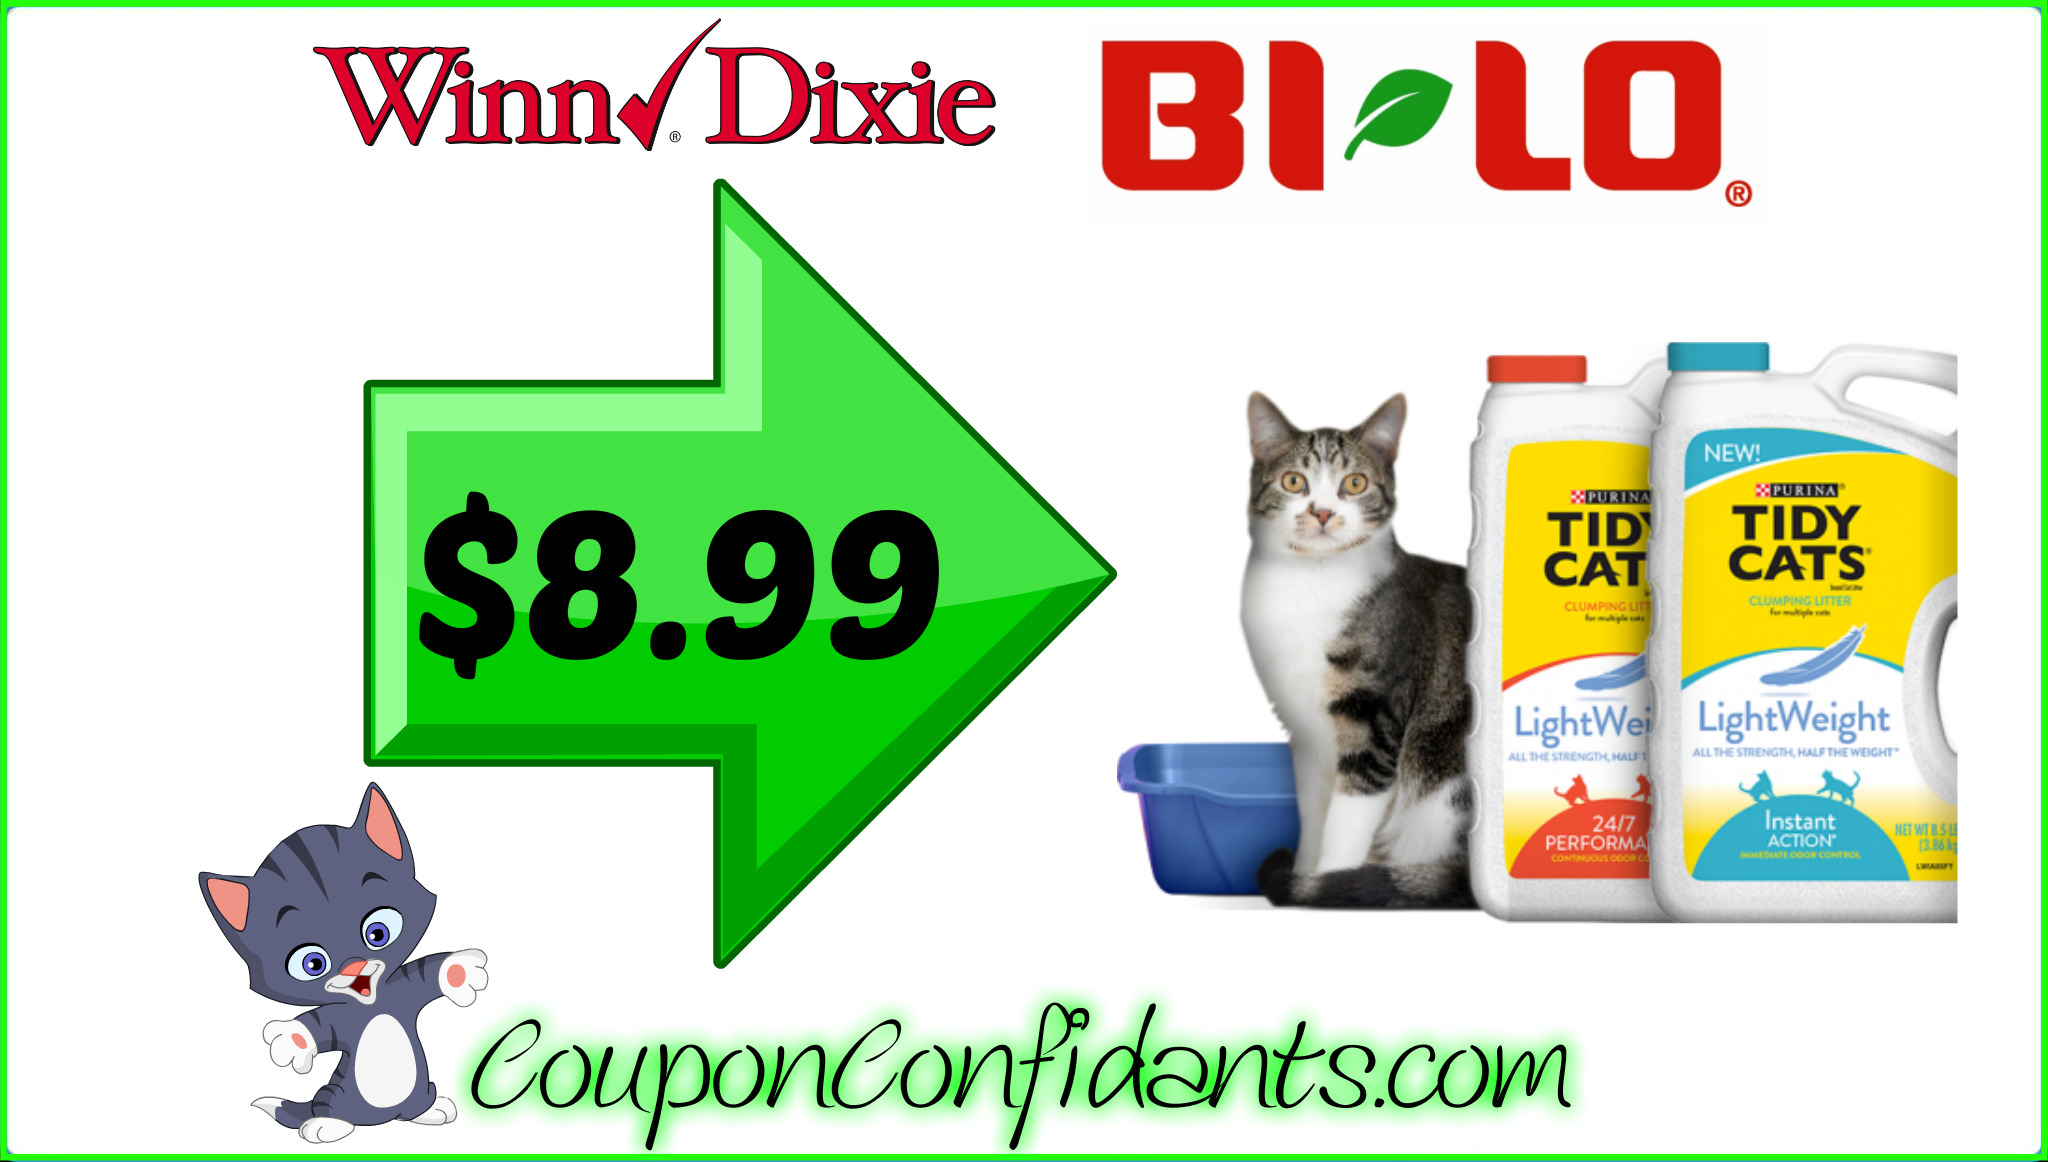 photo about Tidy Cat Printable 3.00 Coupon titled Tidy Cats bundle at Winn Dixie and Bi-lo! ⋆ Coupon Confidants